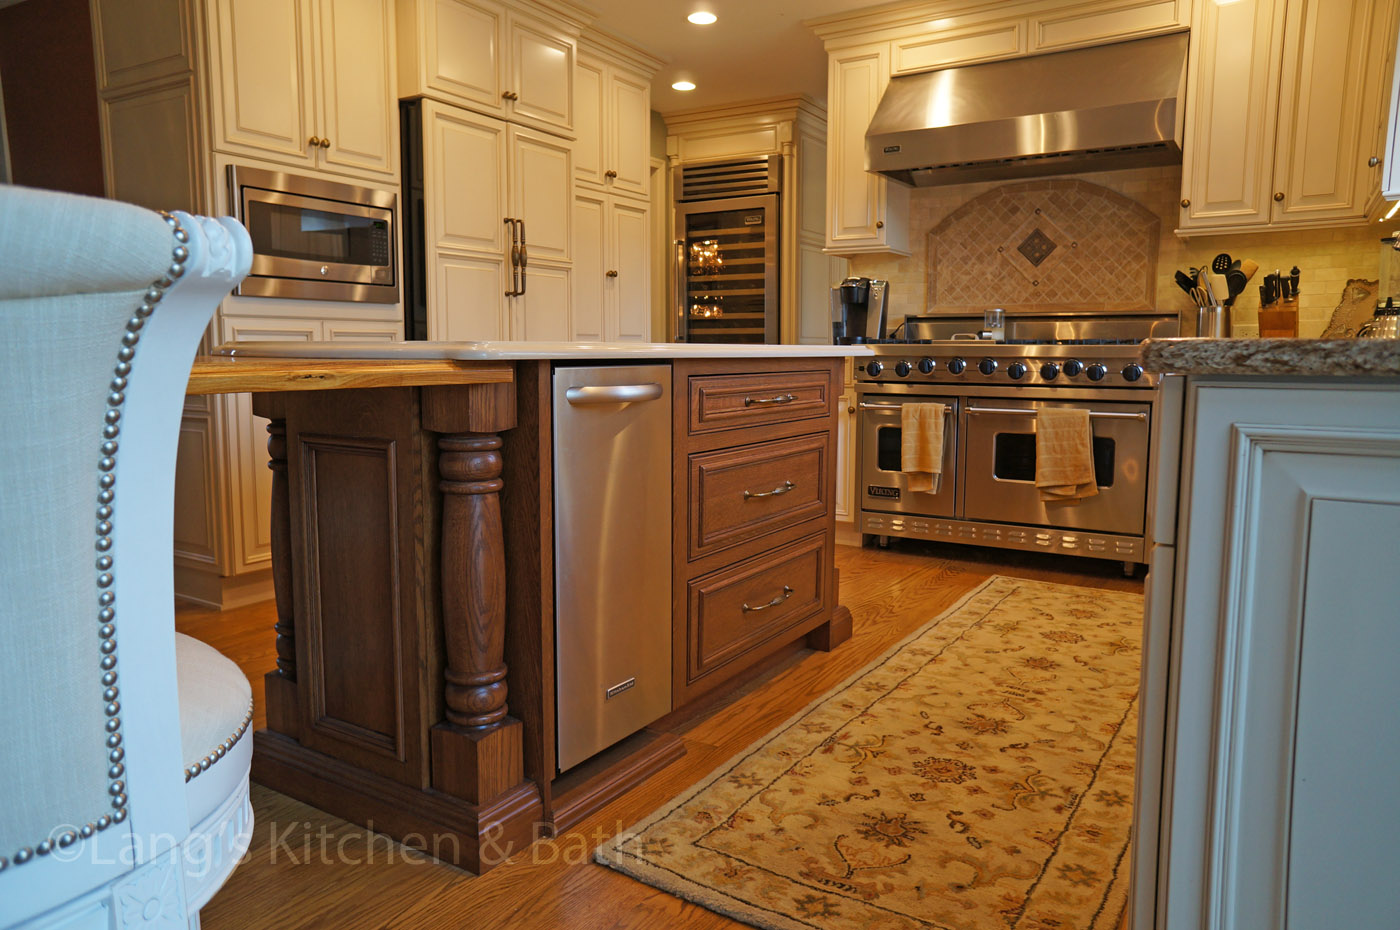 Peirce kitchen design 2_web.jpg